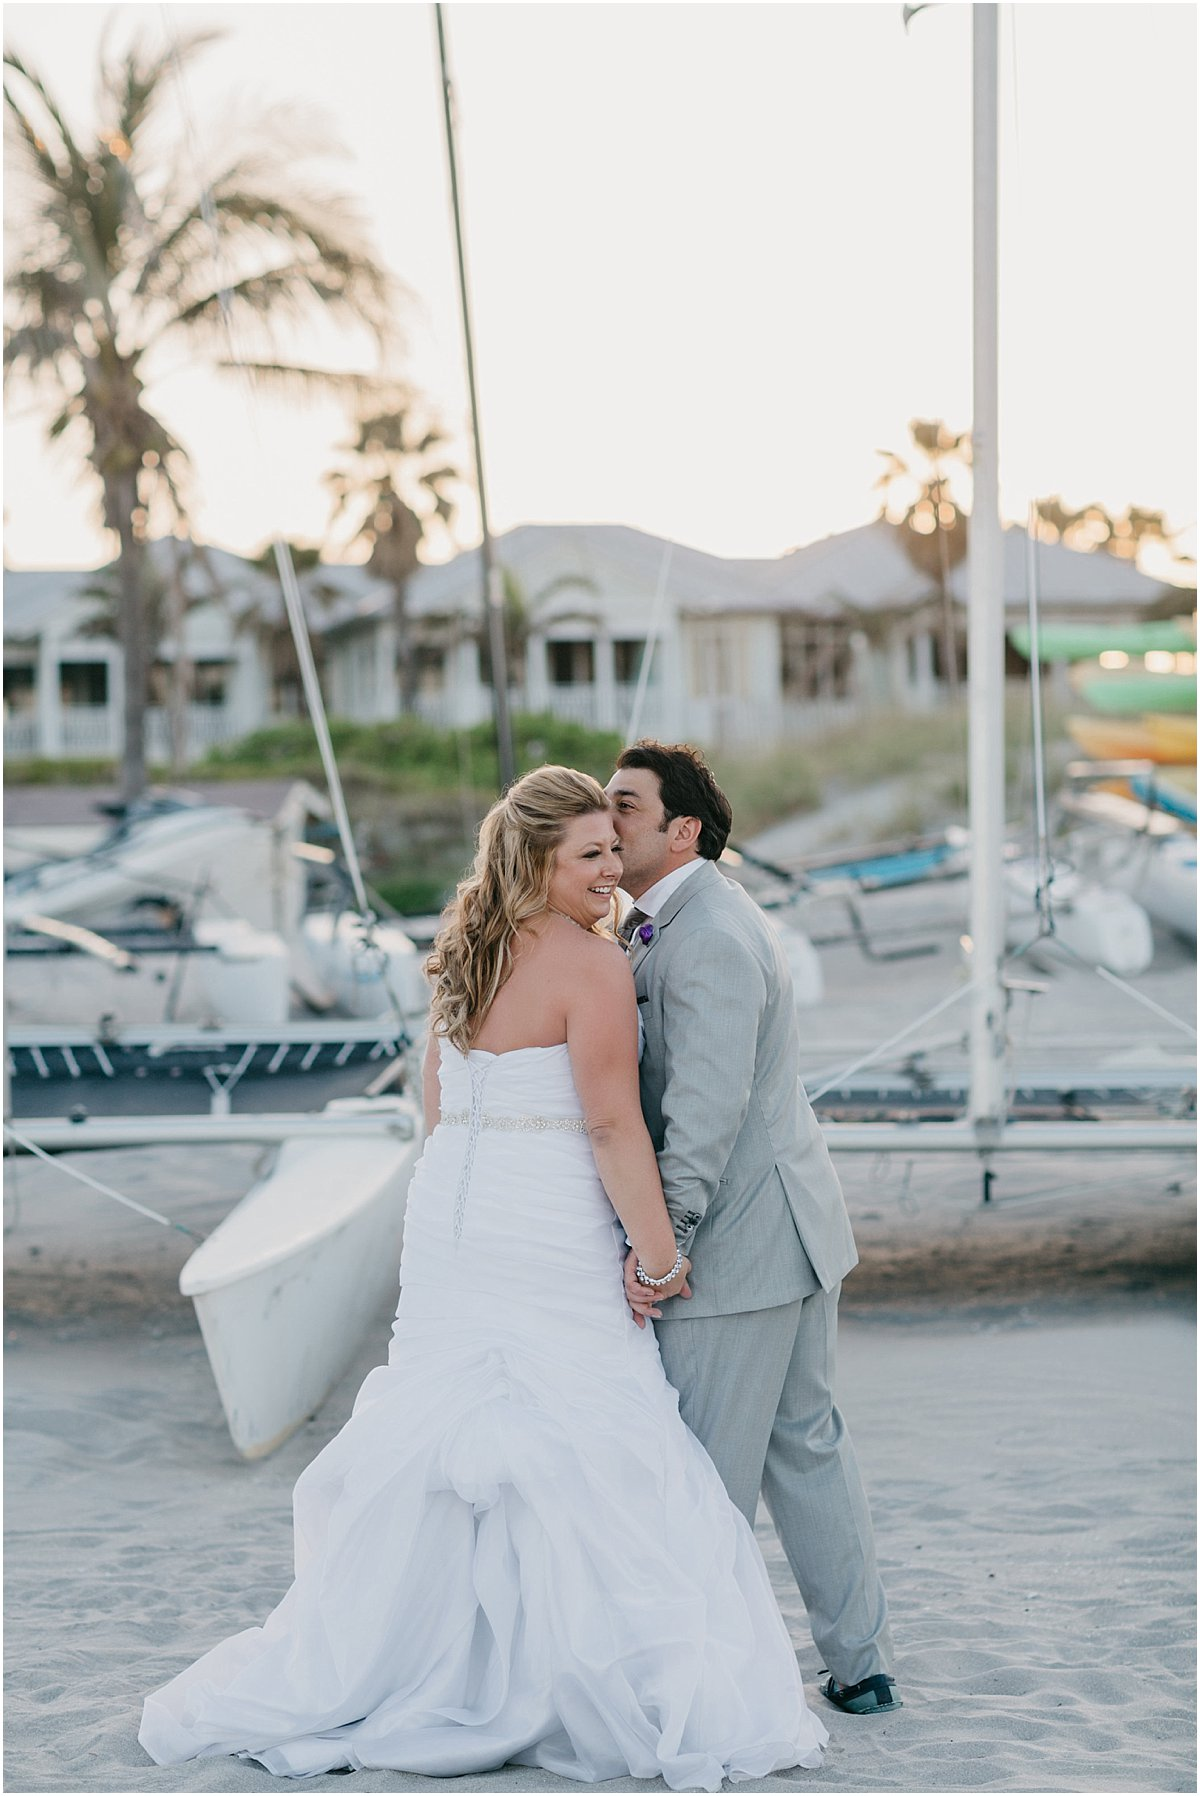 Getting Your Palm Beach County Marriage License_Jessica Bordner Photography